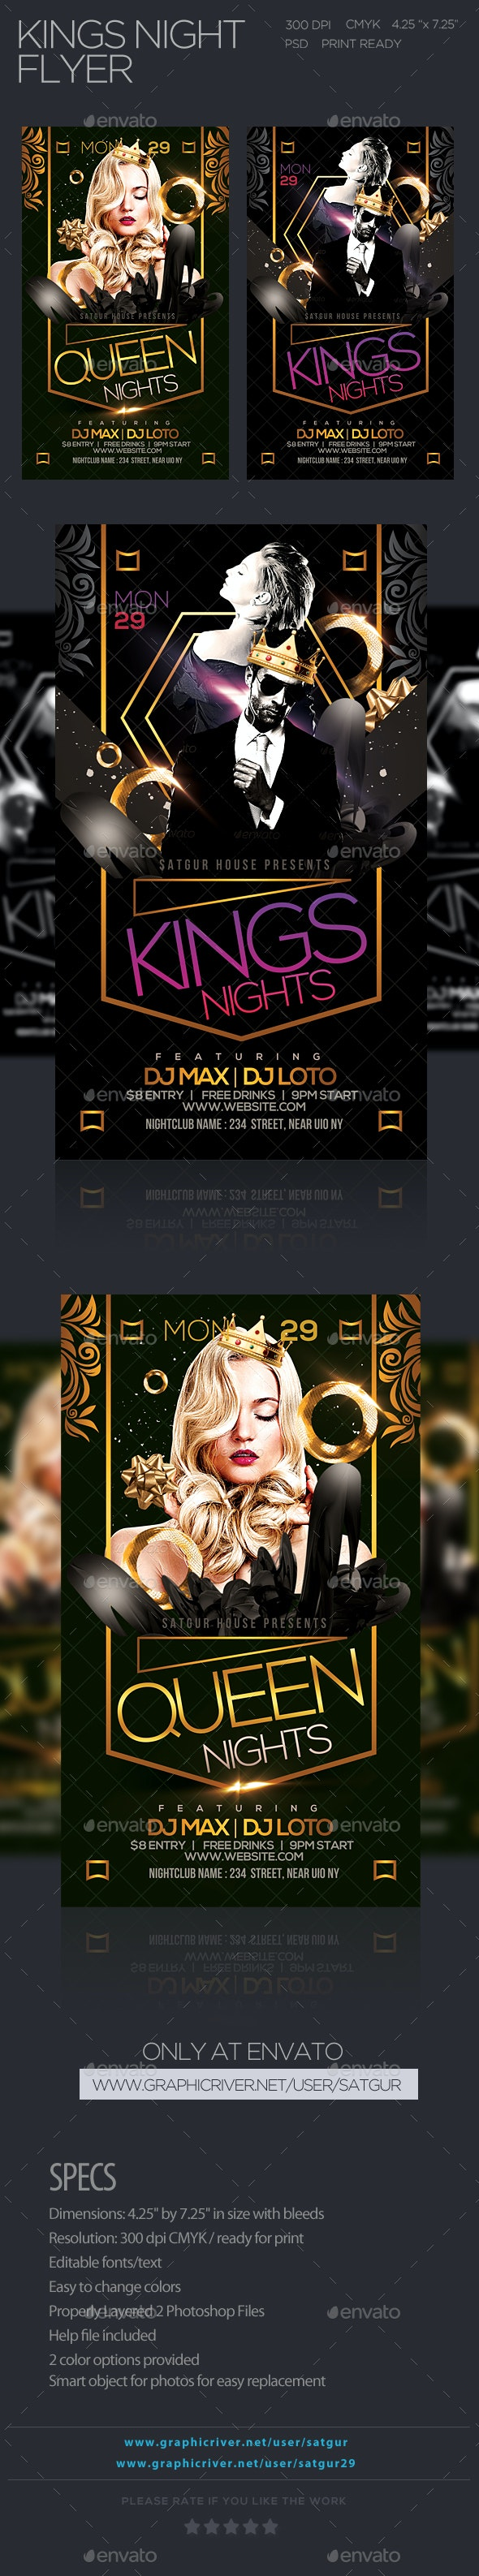 Kings Nights Party Flyer  - Clubs & Parties Events